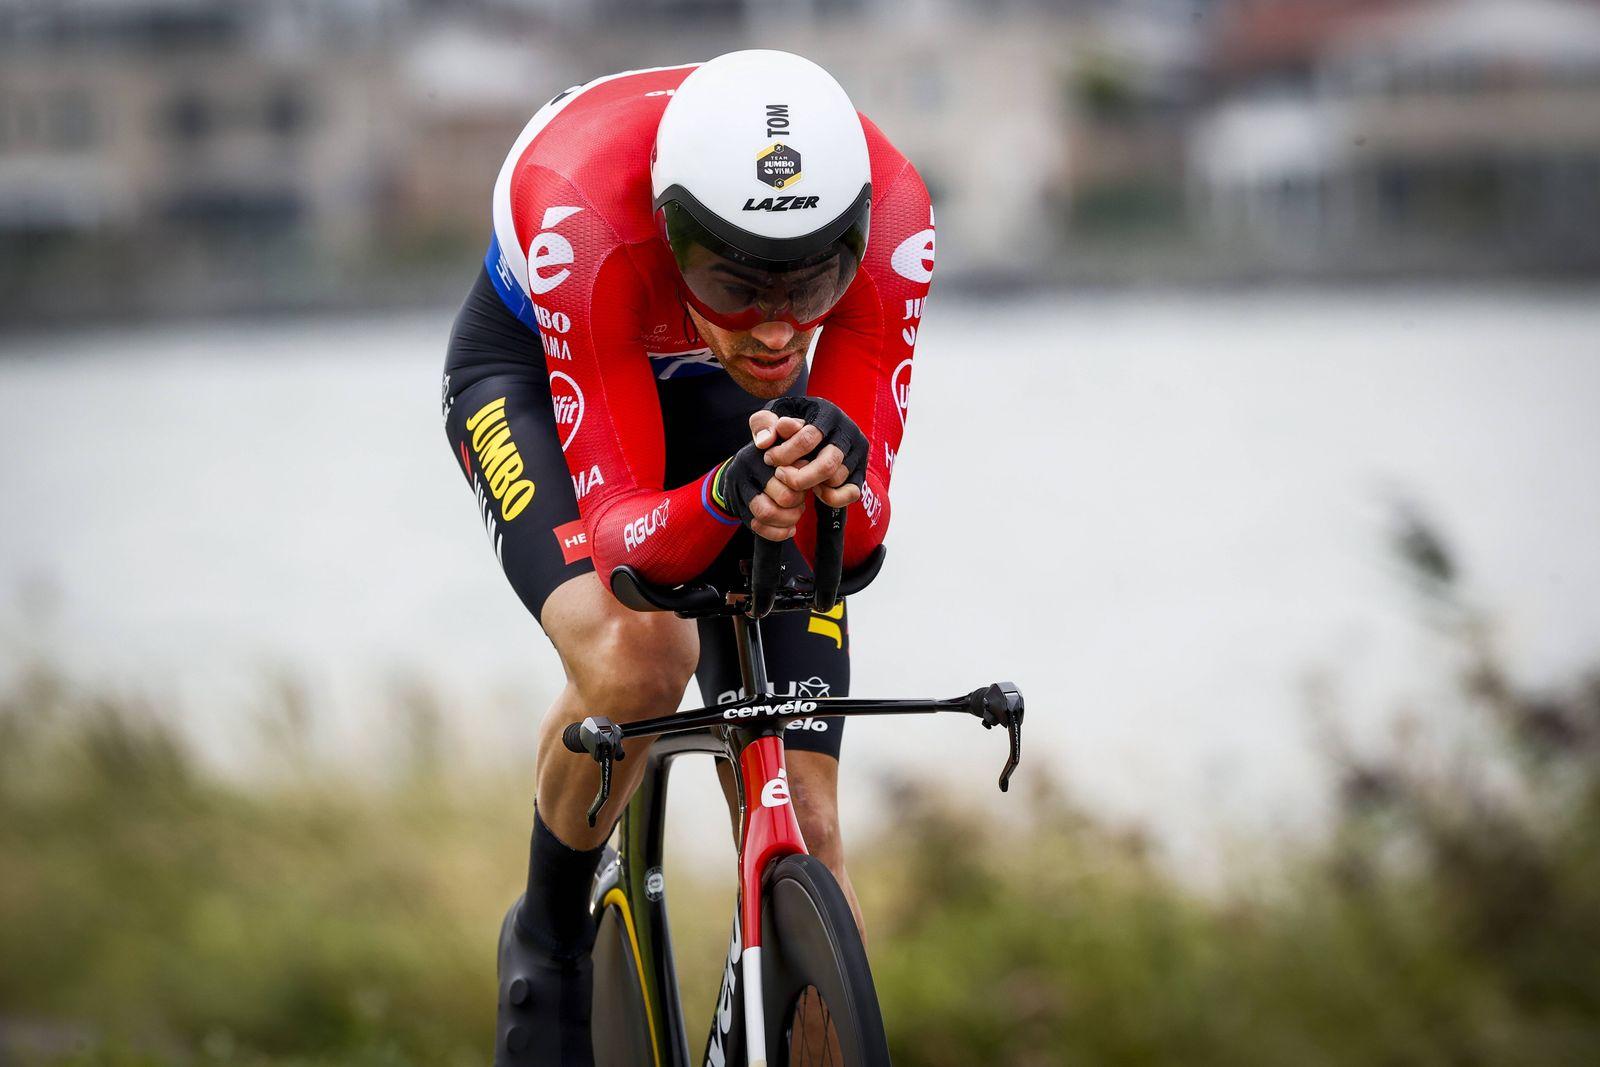 LELYSTAD - Tom Dumoulin in action during the second stage of the Benelux Tour, a 11.1 km time trial in Lelystad. ANP VIN